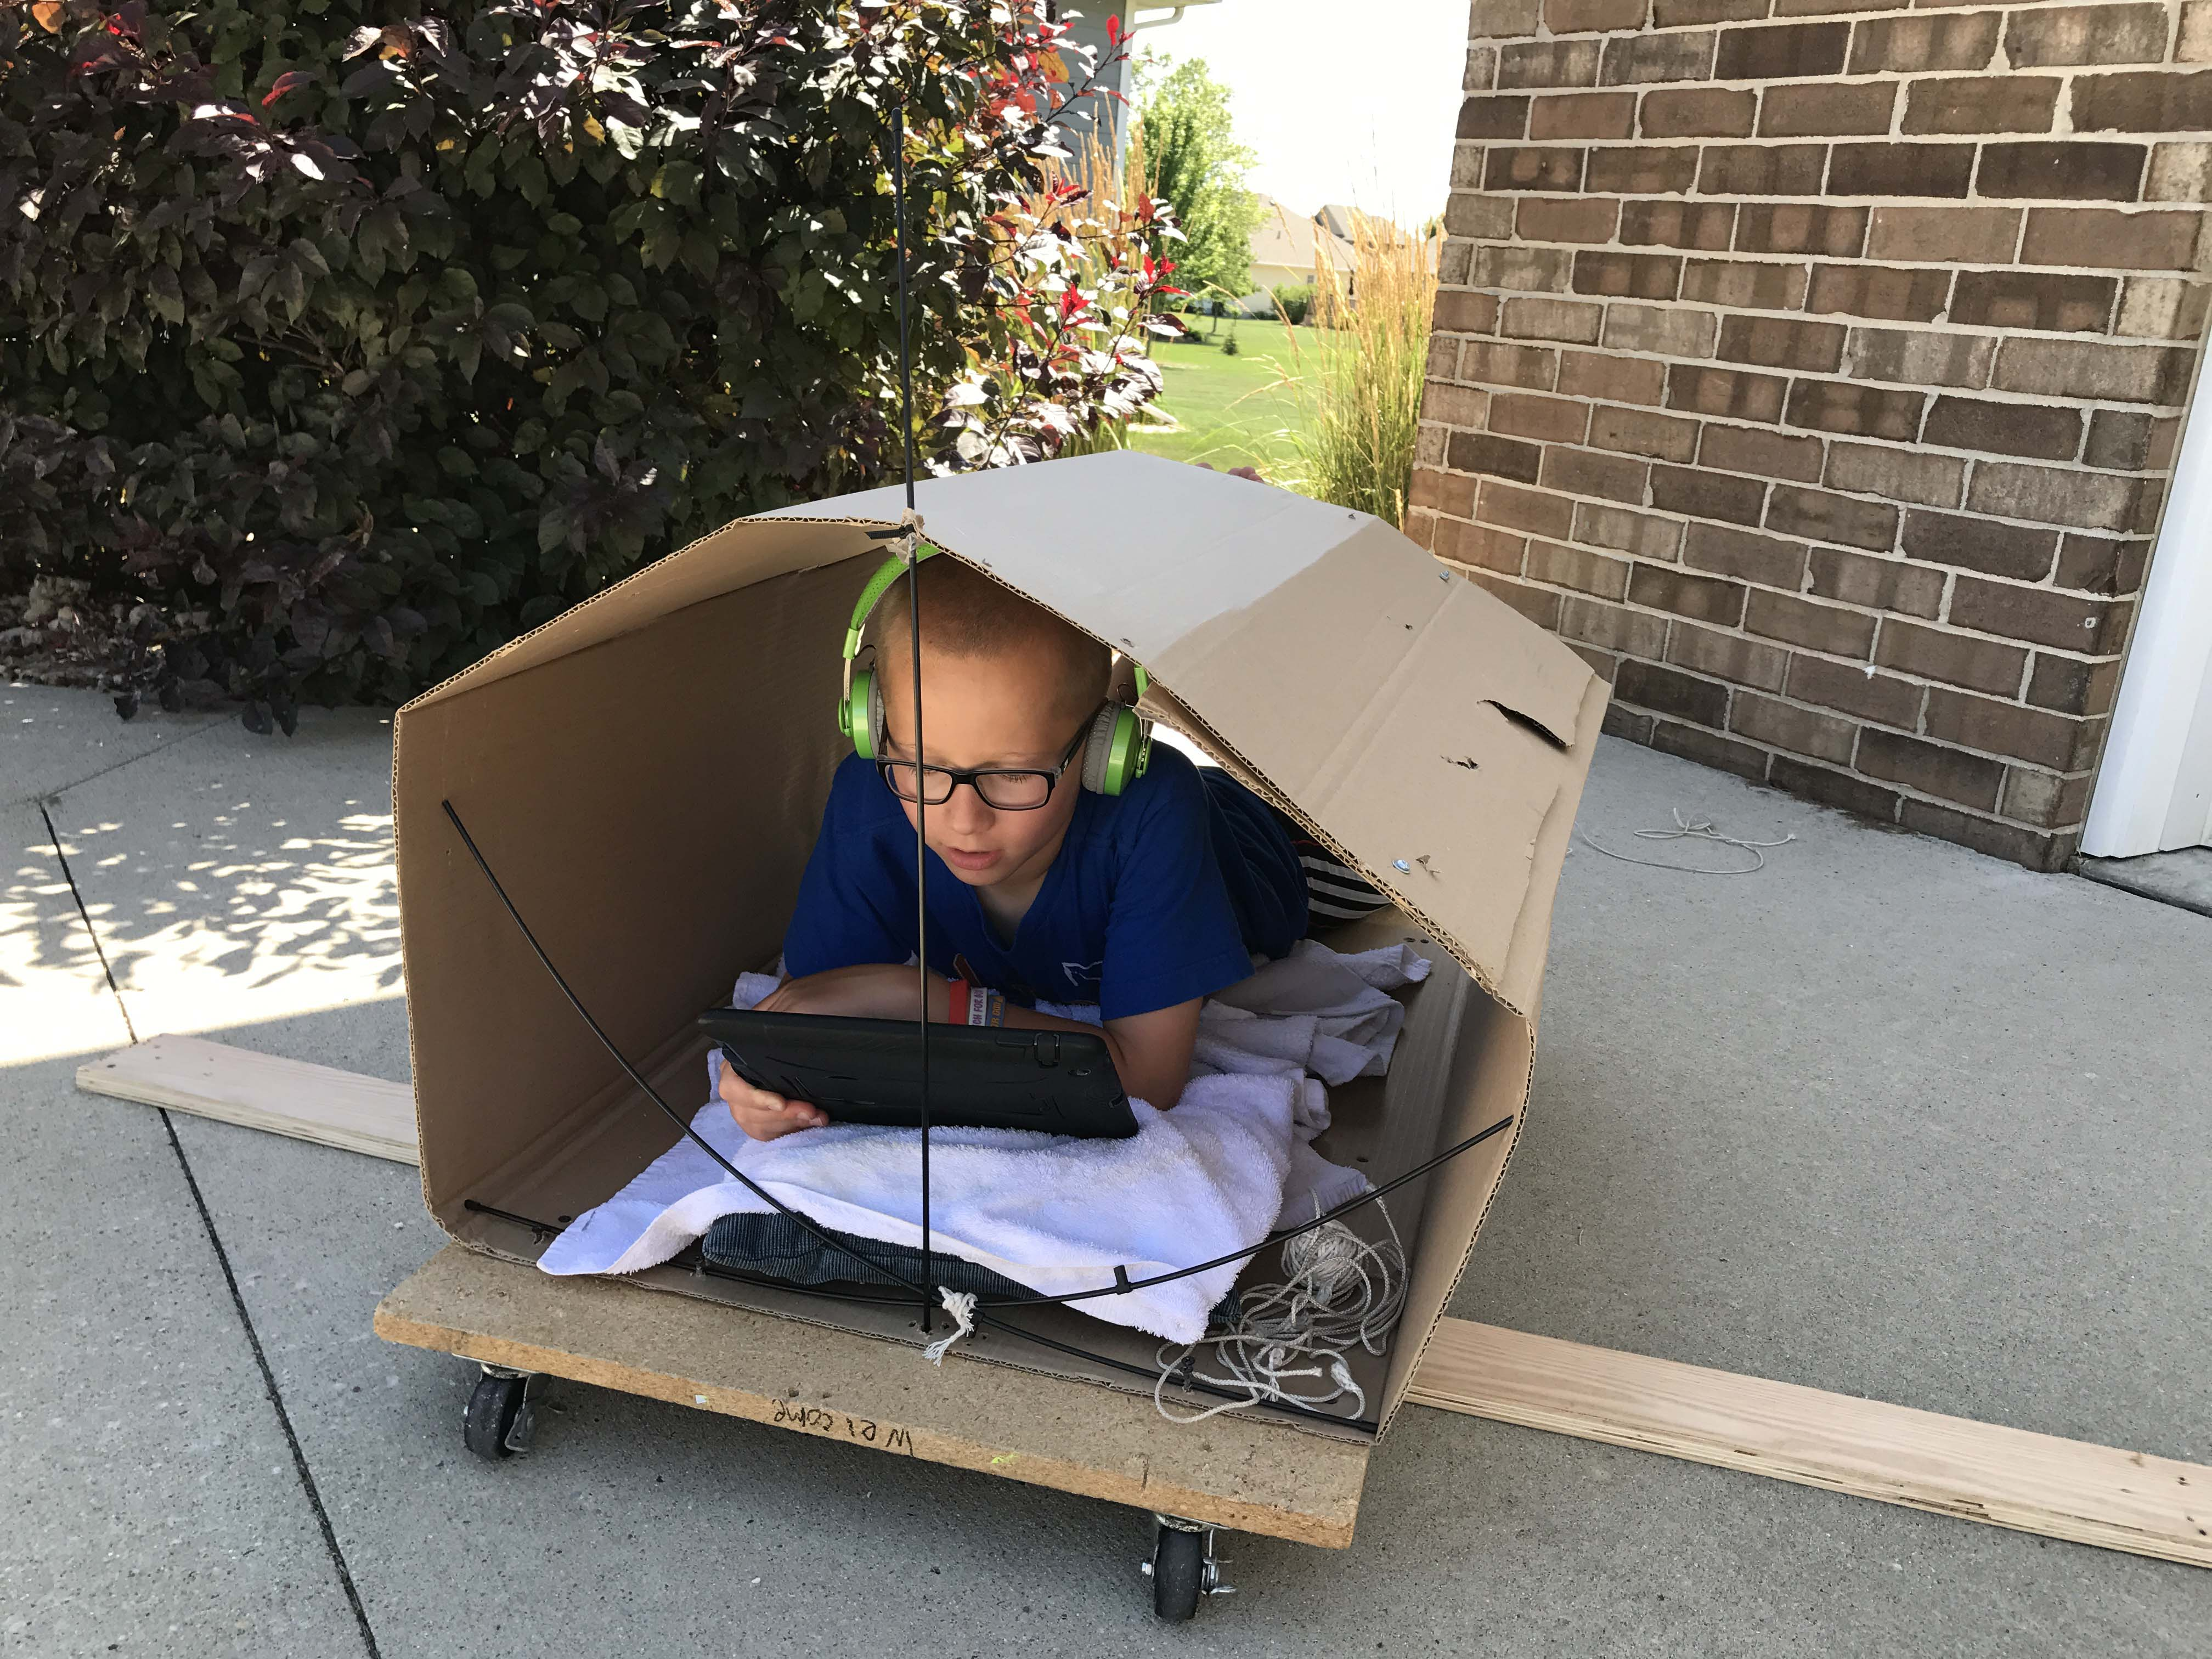 Dyslexic student ear reading in a fort he built outside on a summer's day.